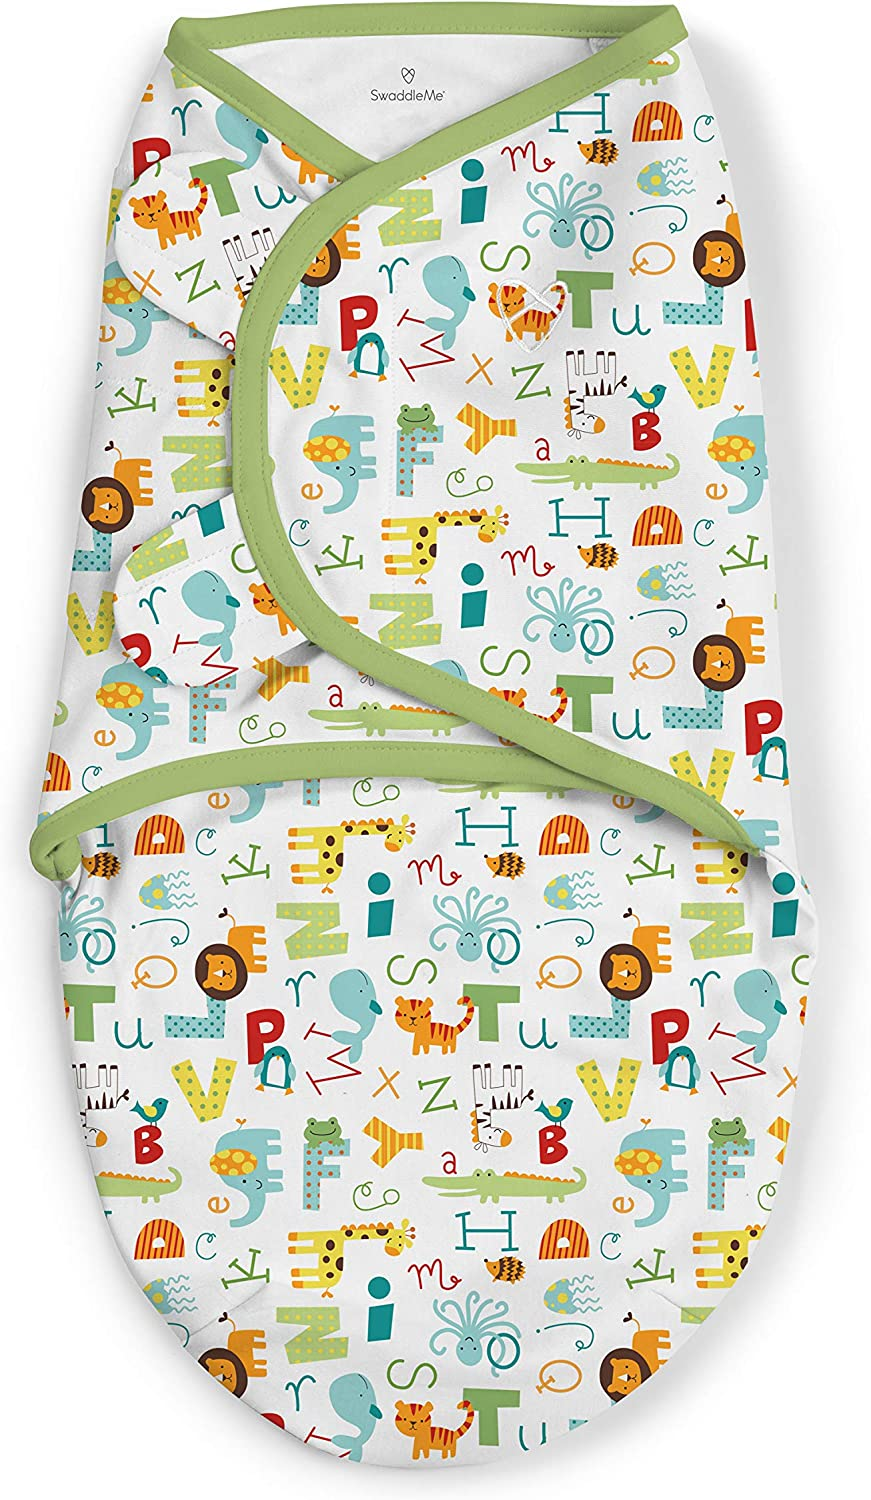 Summer Infant Swaddle Me in Cahoots Small